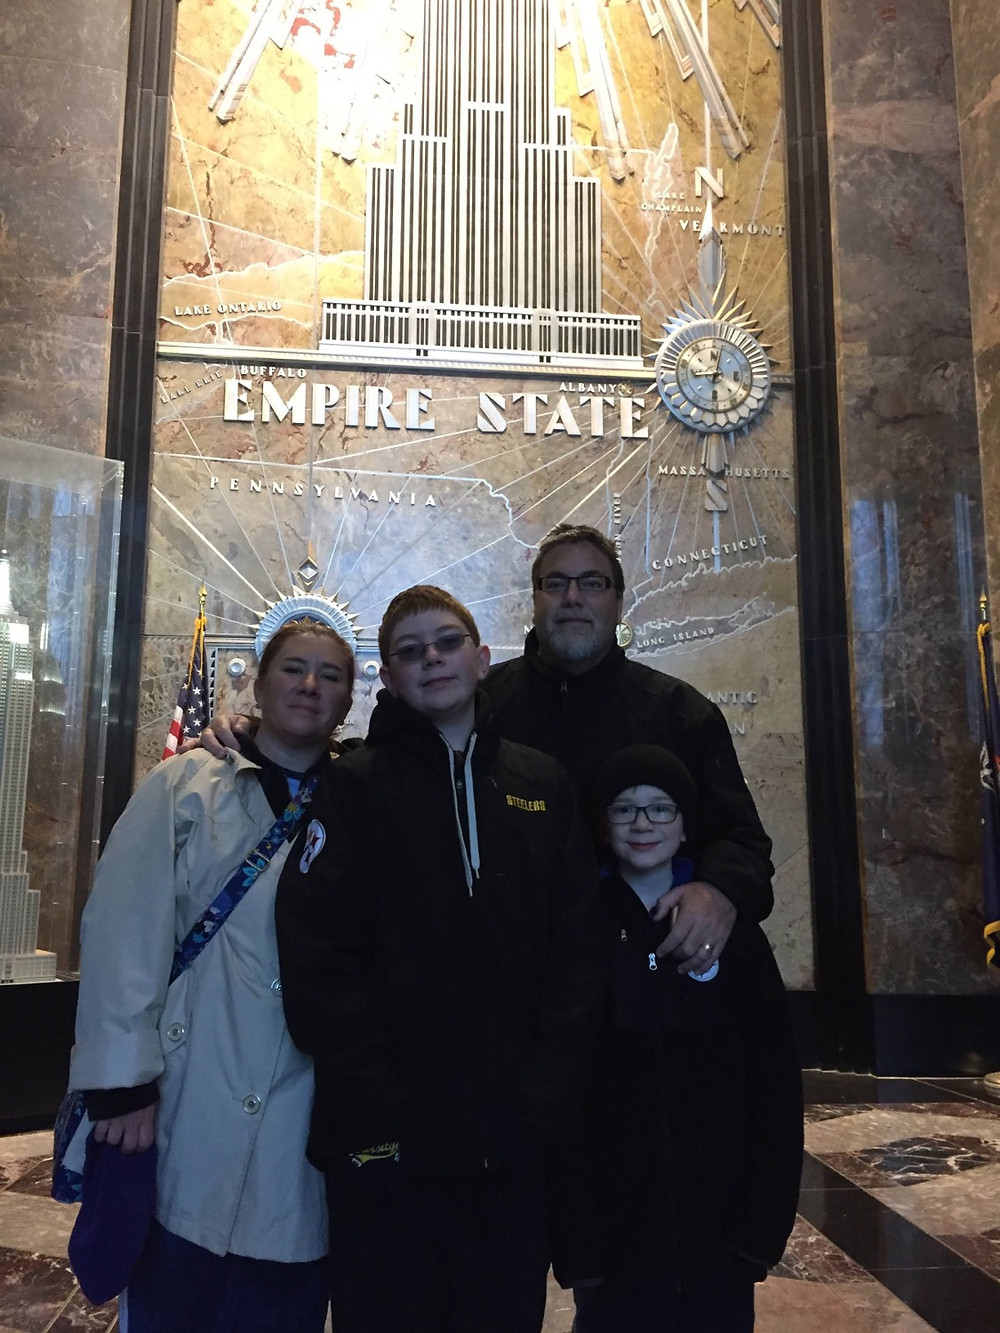 A photo of david brodosi and his family at the Empire State building